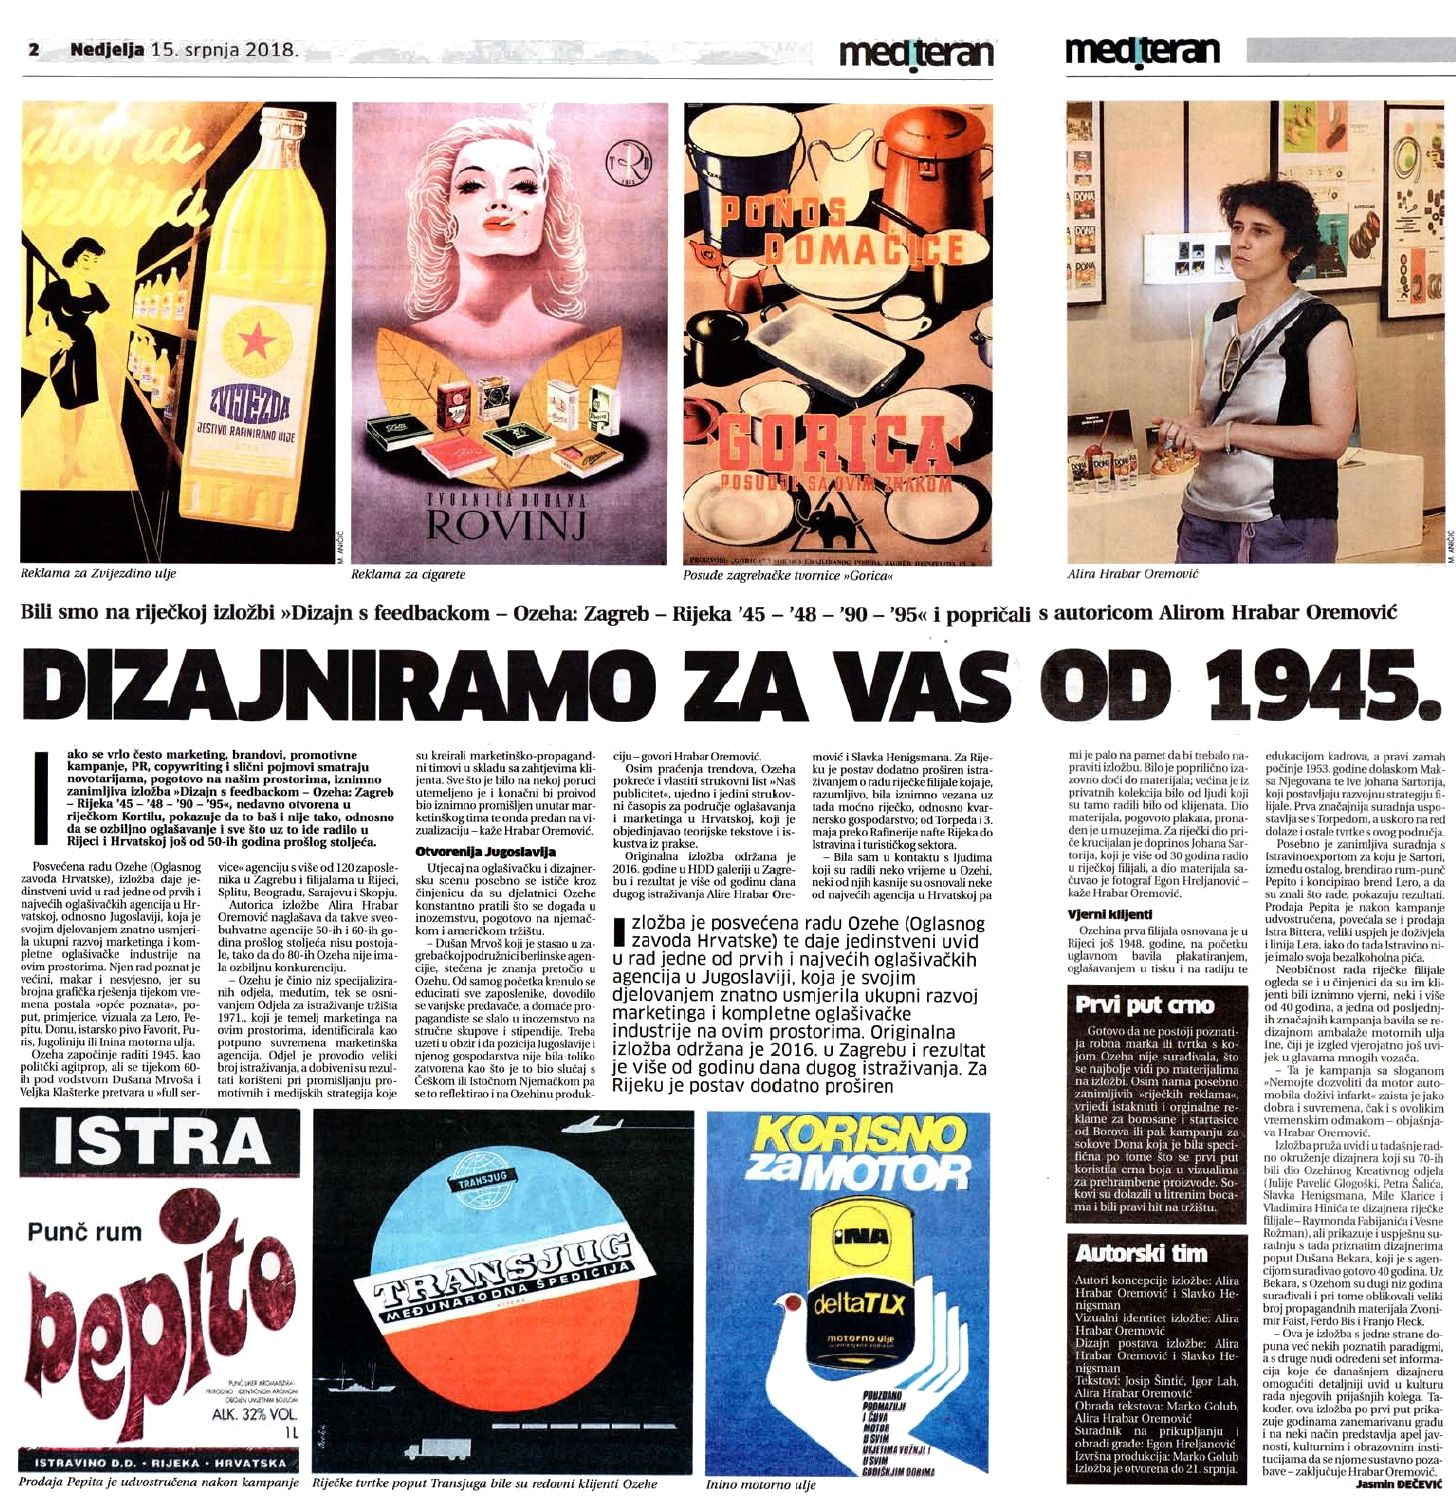 News Article About The Exhibition Design With Feedback Ozeha Advertising Agency Zagreb Rijeka 2018 F Advertising Material Advertising Agency Rijeka